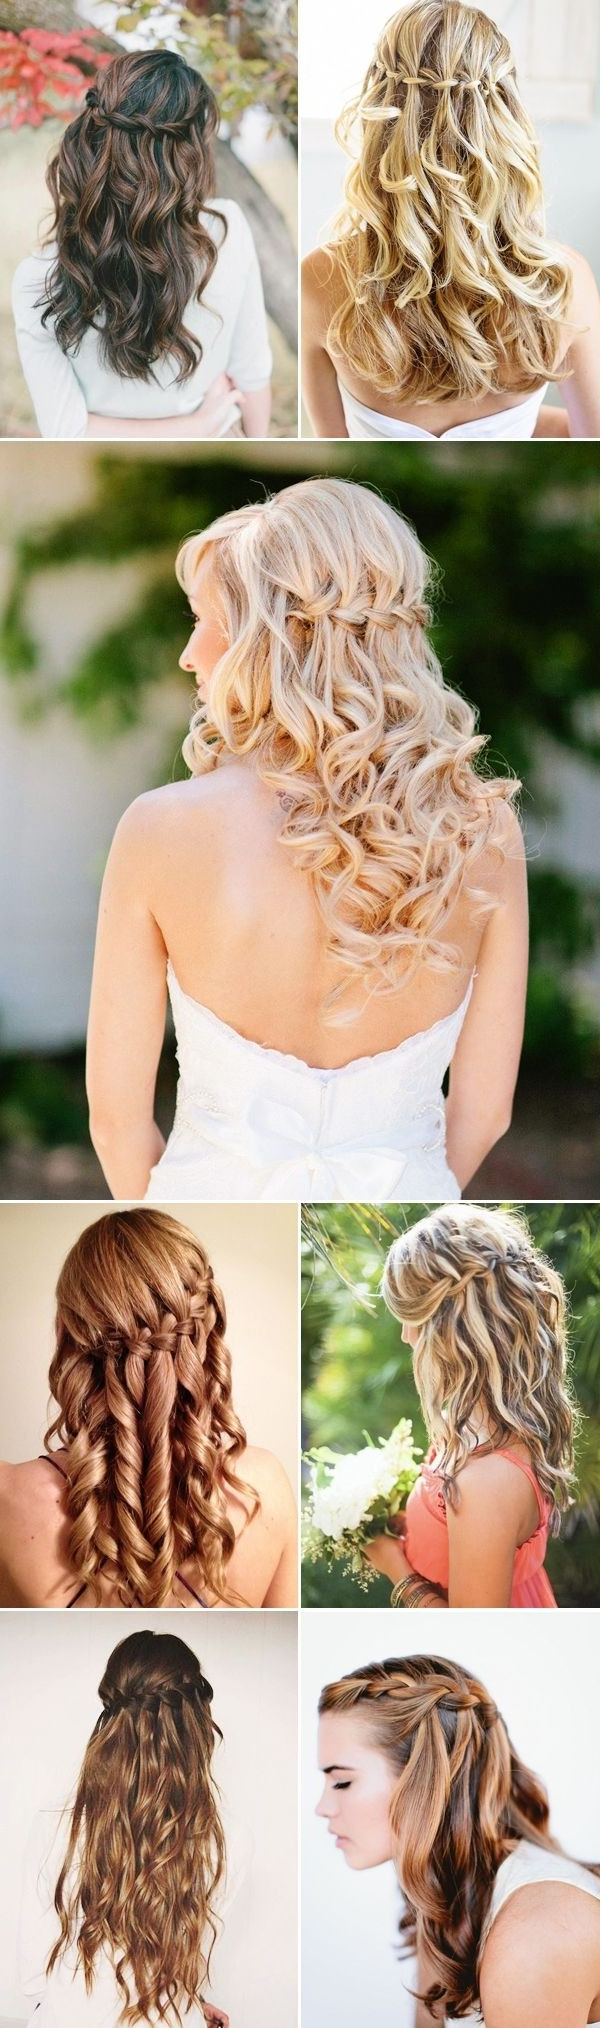 30 Hottest Bridesmaid Hairstyles For Long Hair – Popular Haircuts Regarding Most Recent Wedding Semi Updo Bridal Hairstyles With Braid (View 12 of 20)